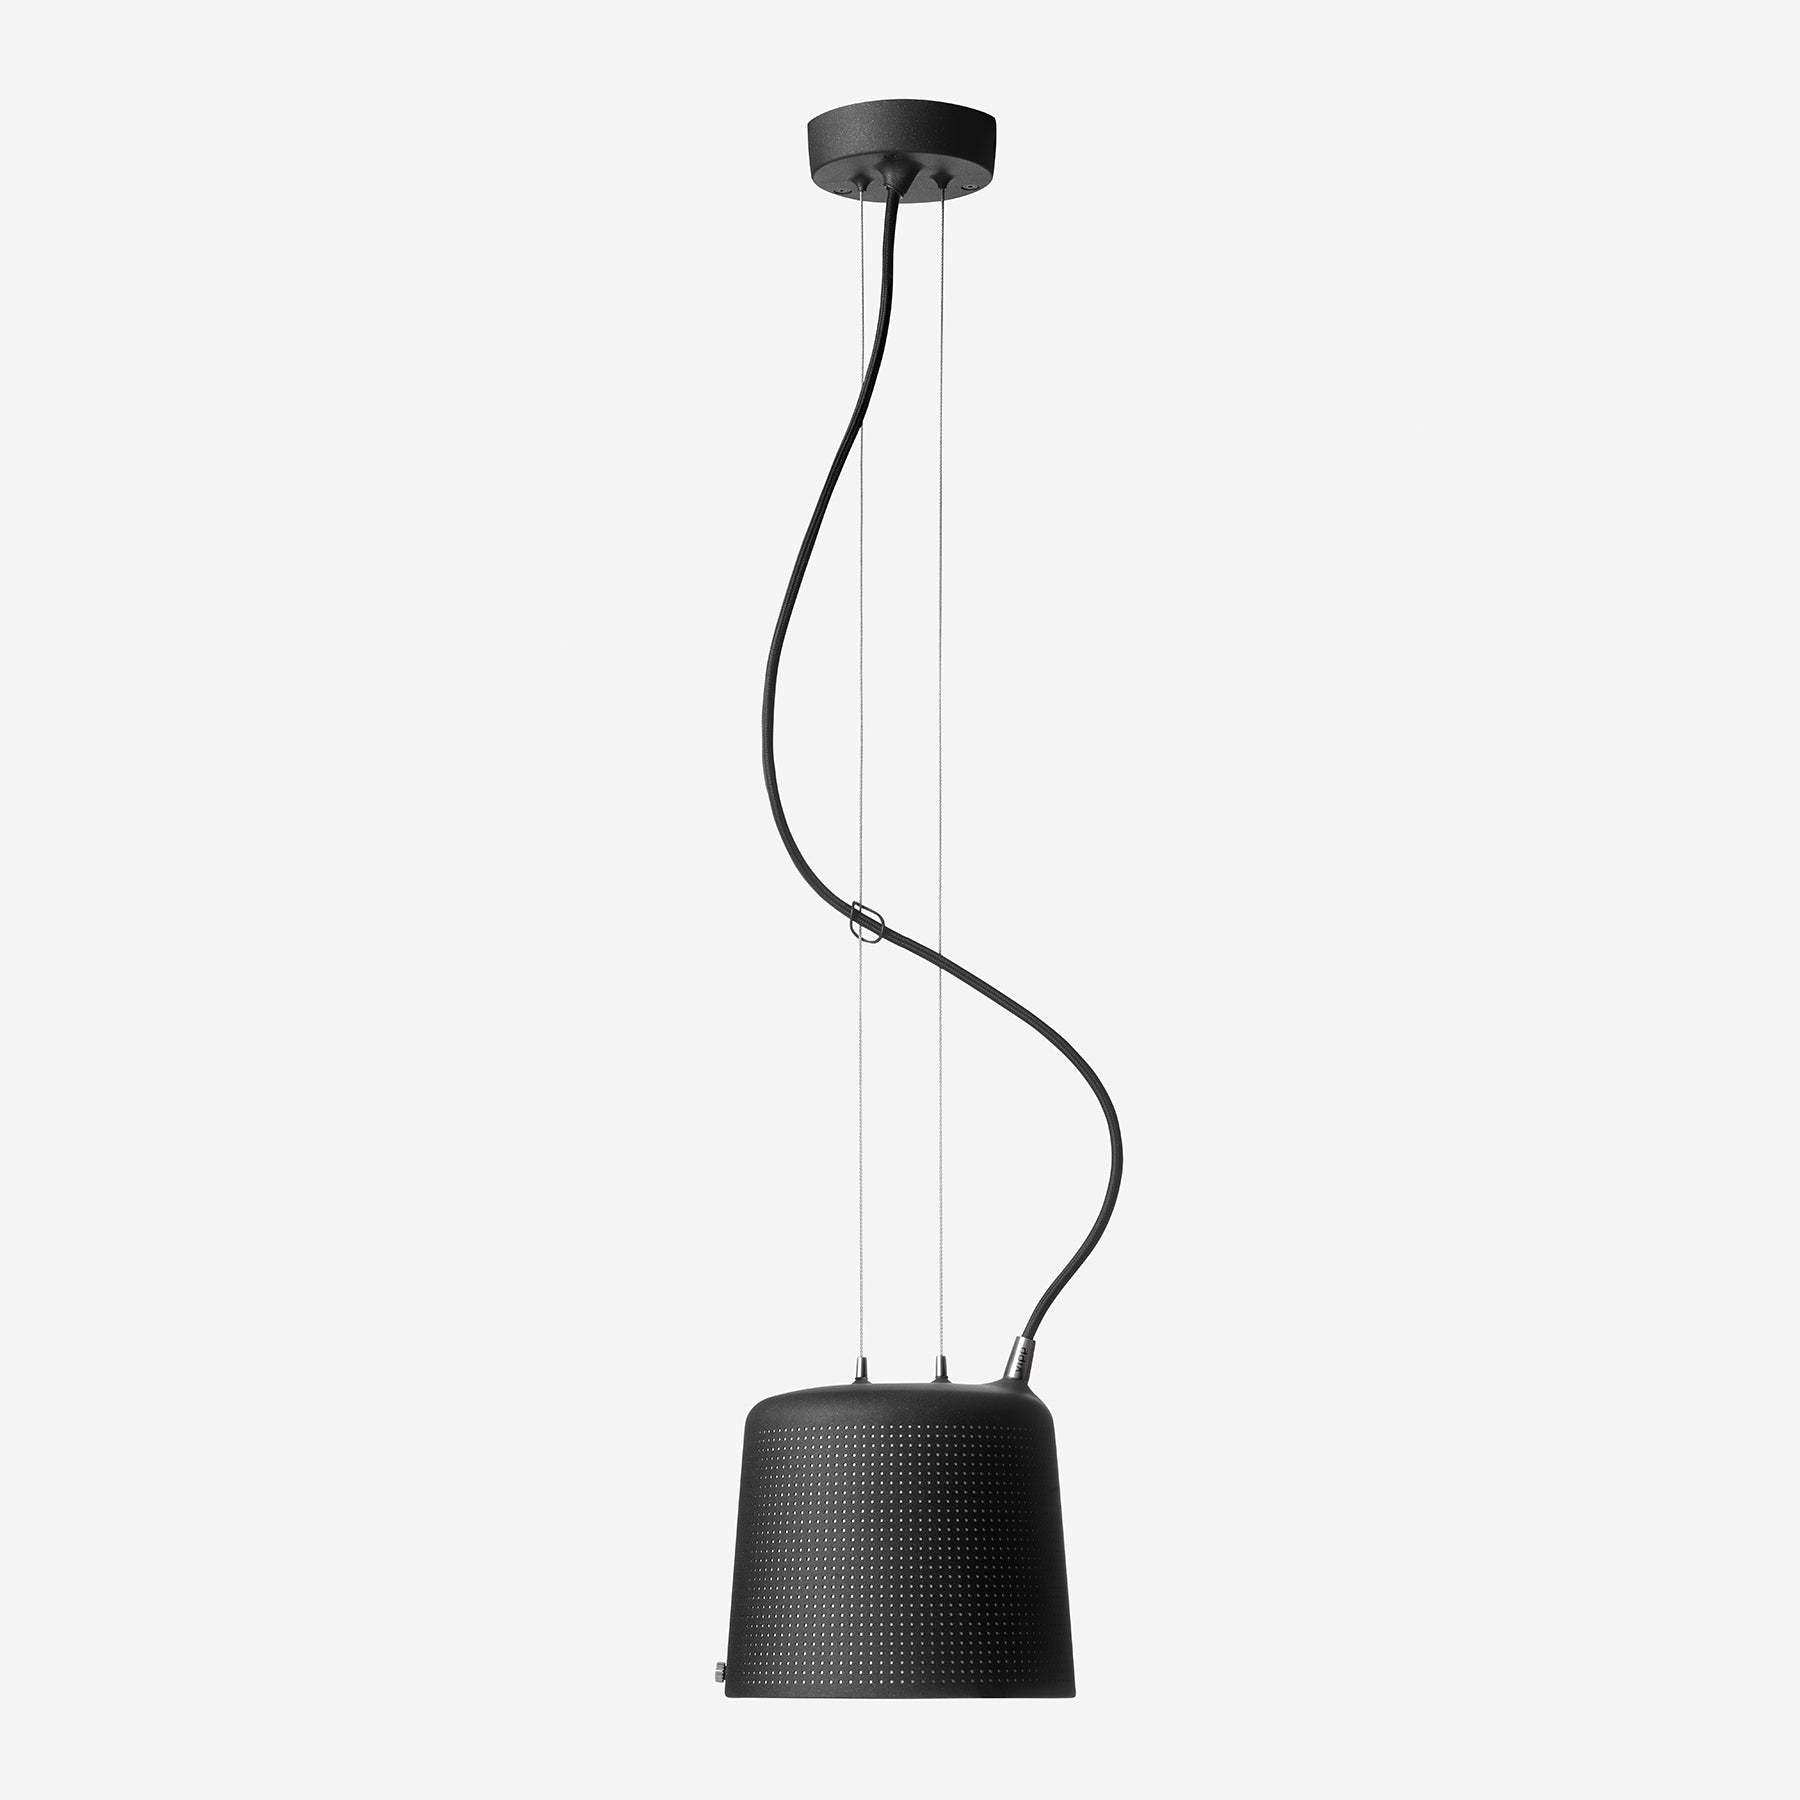 Vipp528 Pendant Small - Black